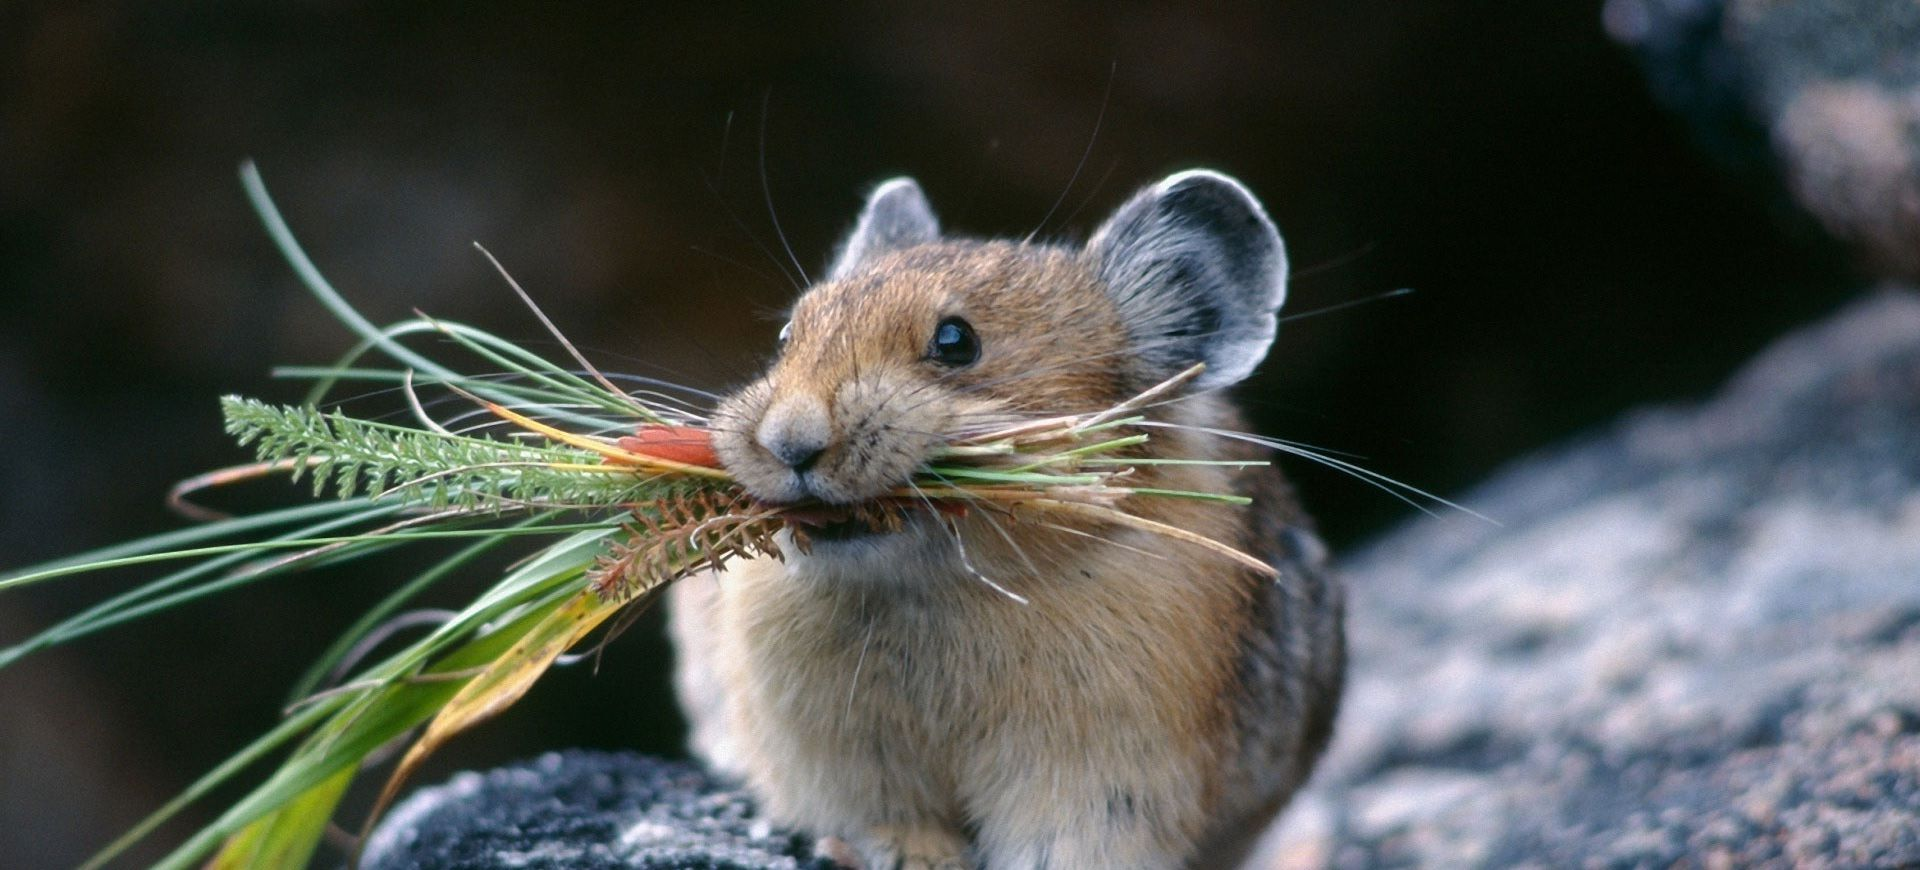 Rodent care